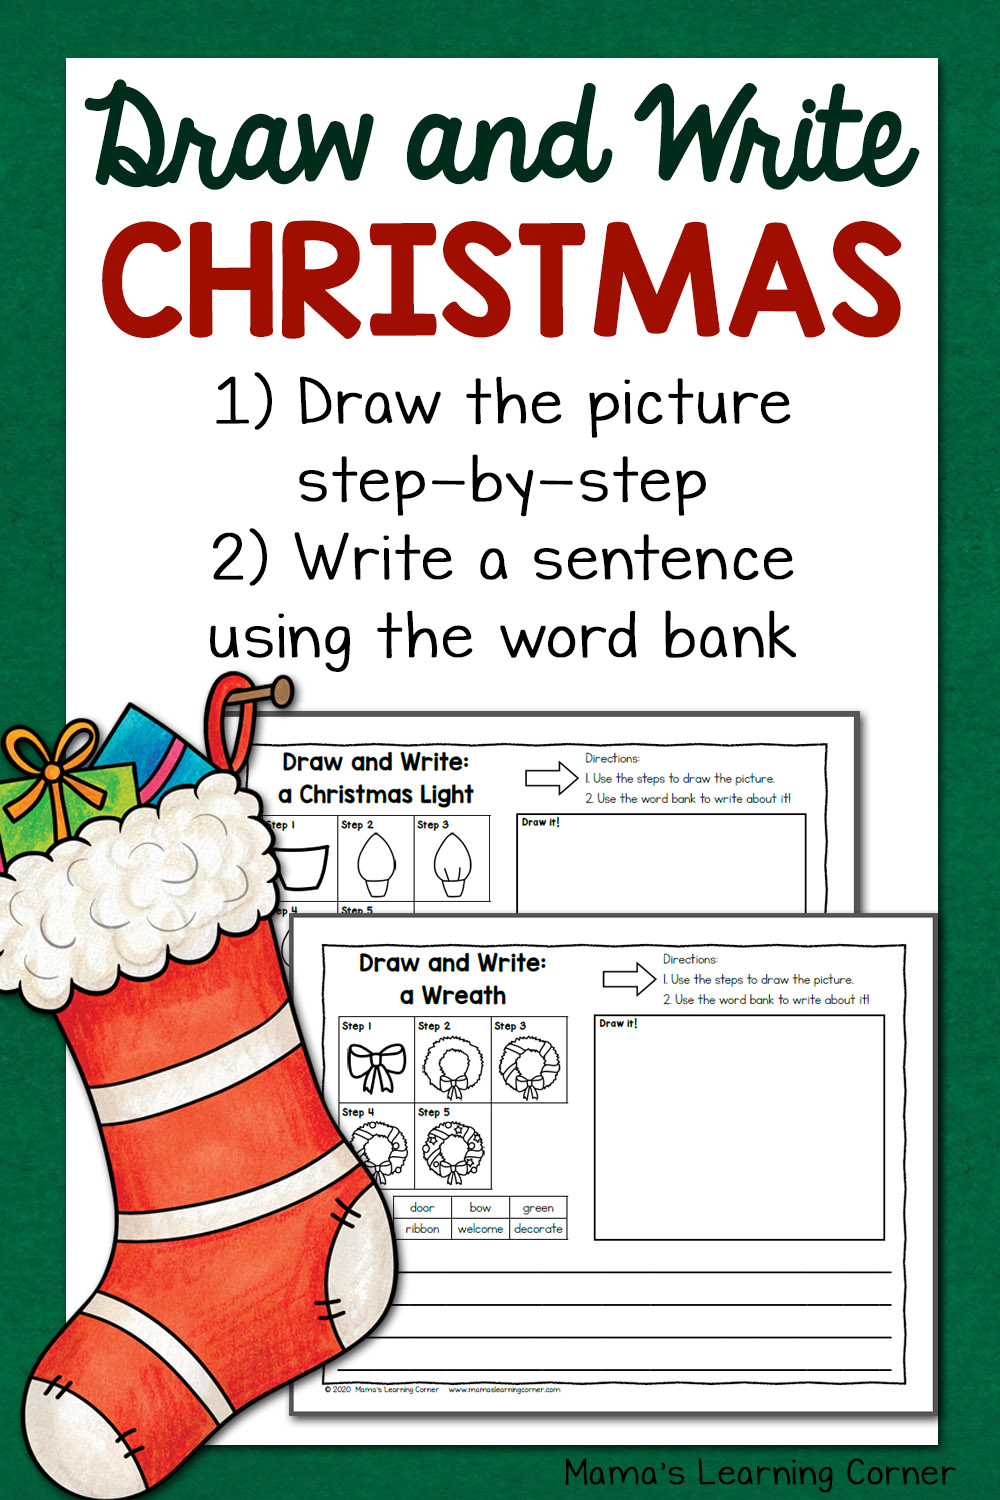 hight resolution of Christmas Directed Draw and Write Worksheets - Mamas Learning Corner